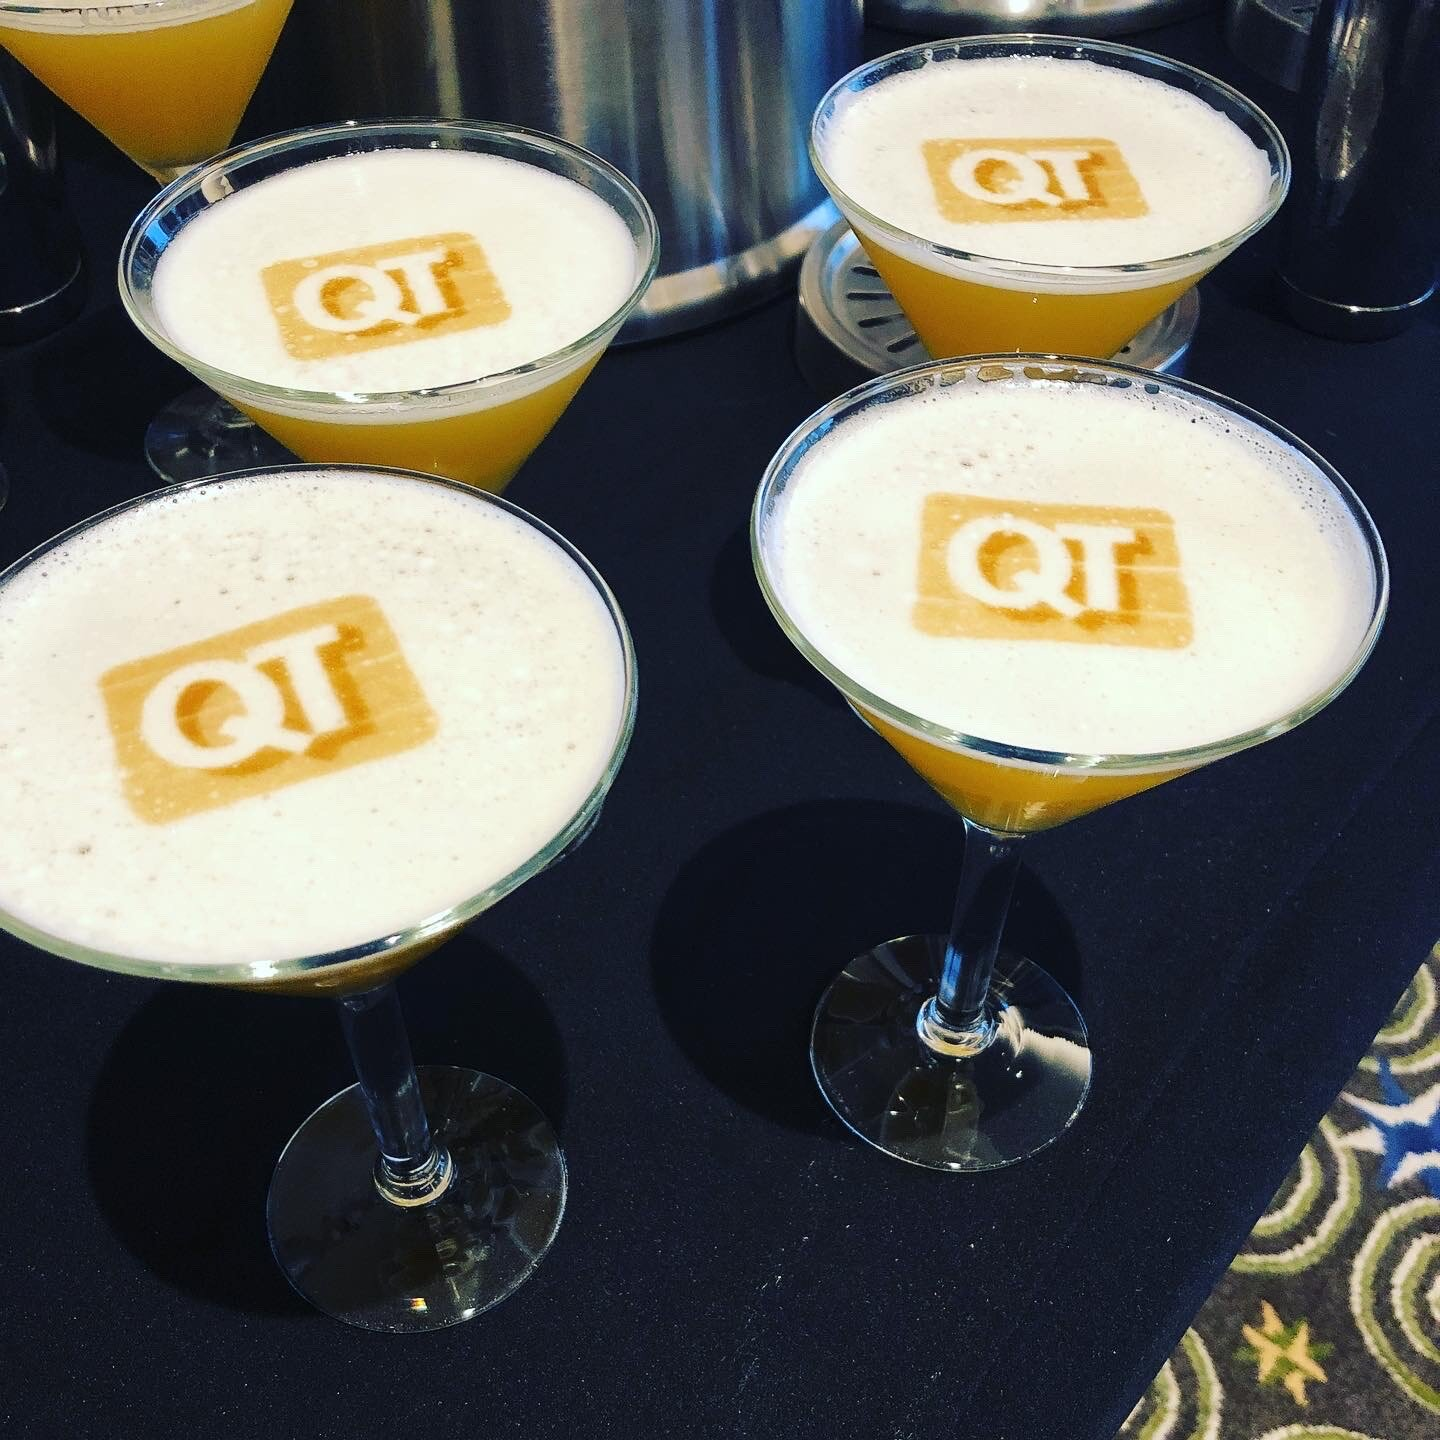 Our Branded Cocktail and Beer Foam is the Perfect Way To Add Some Fun and Enhance Your Evening!